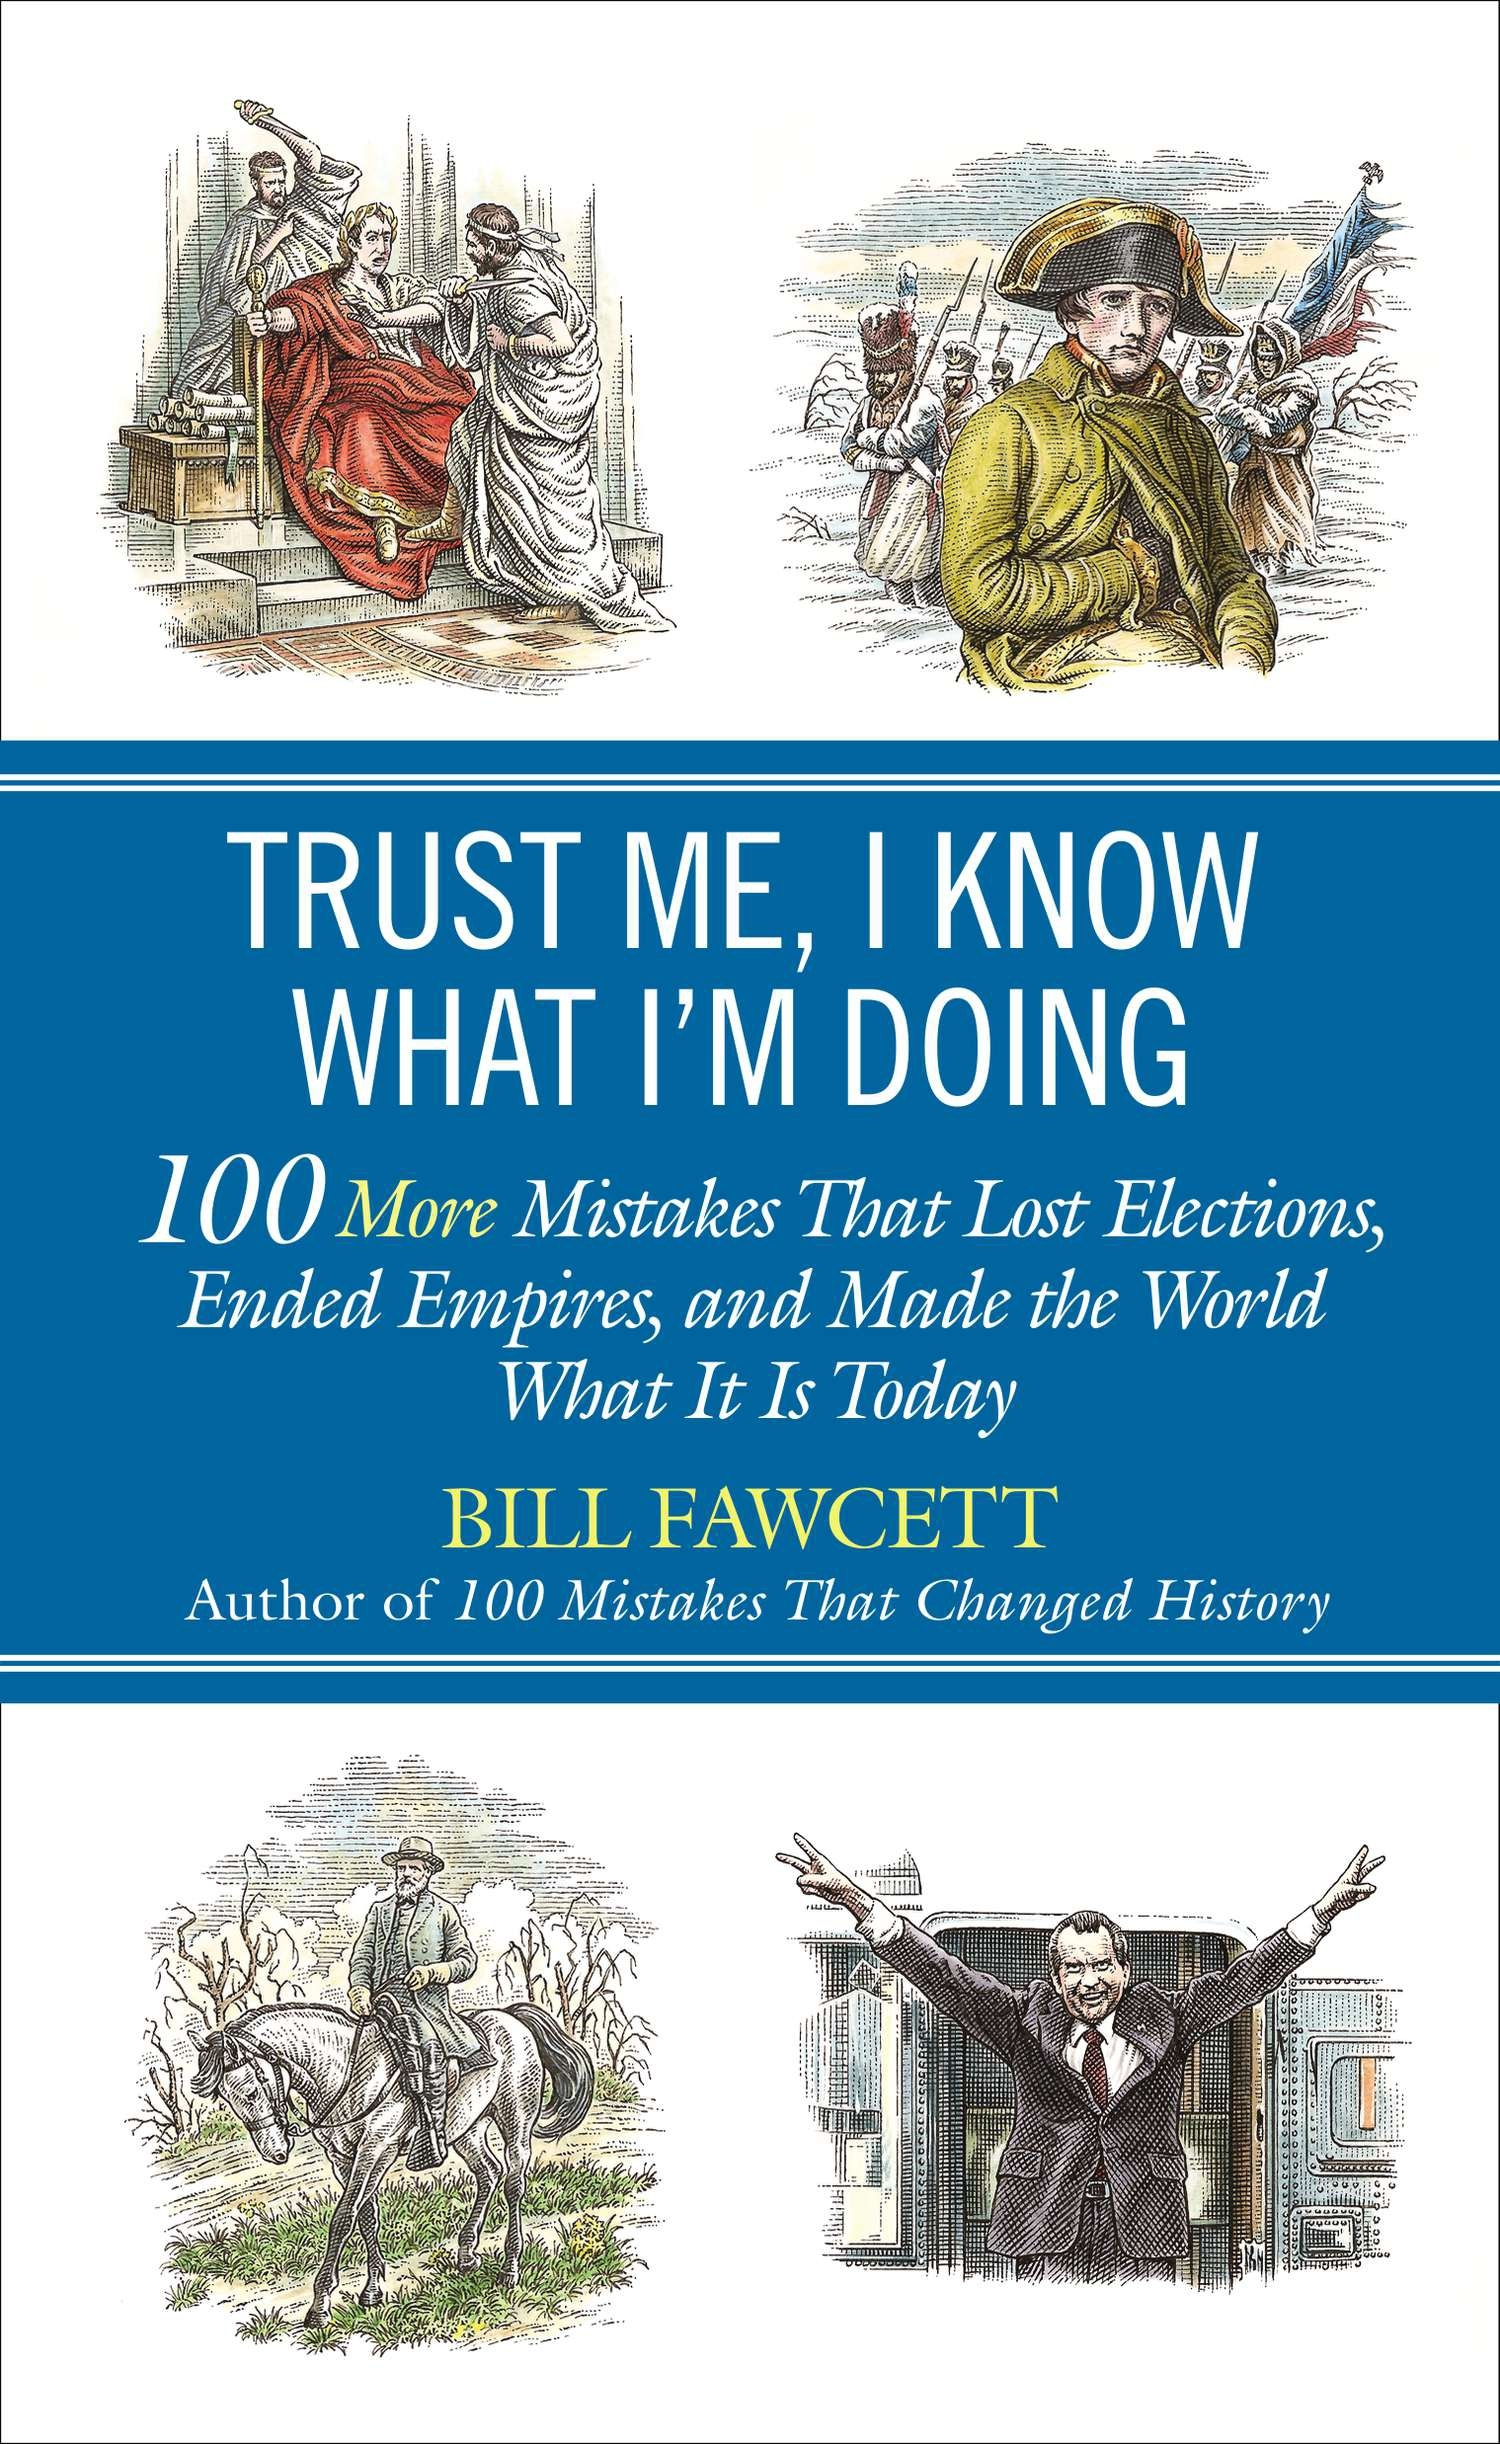 Trust Me, I Know What I'm Doing: 100 More Mistakes That Lost Elections,  Ended Empires, and Made the World What It Is Today. By Bill Fawcett